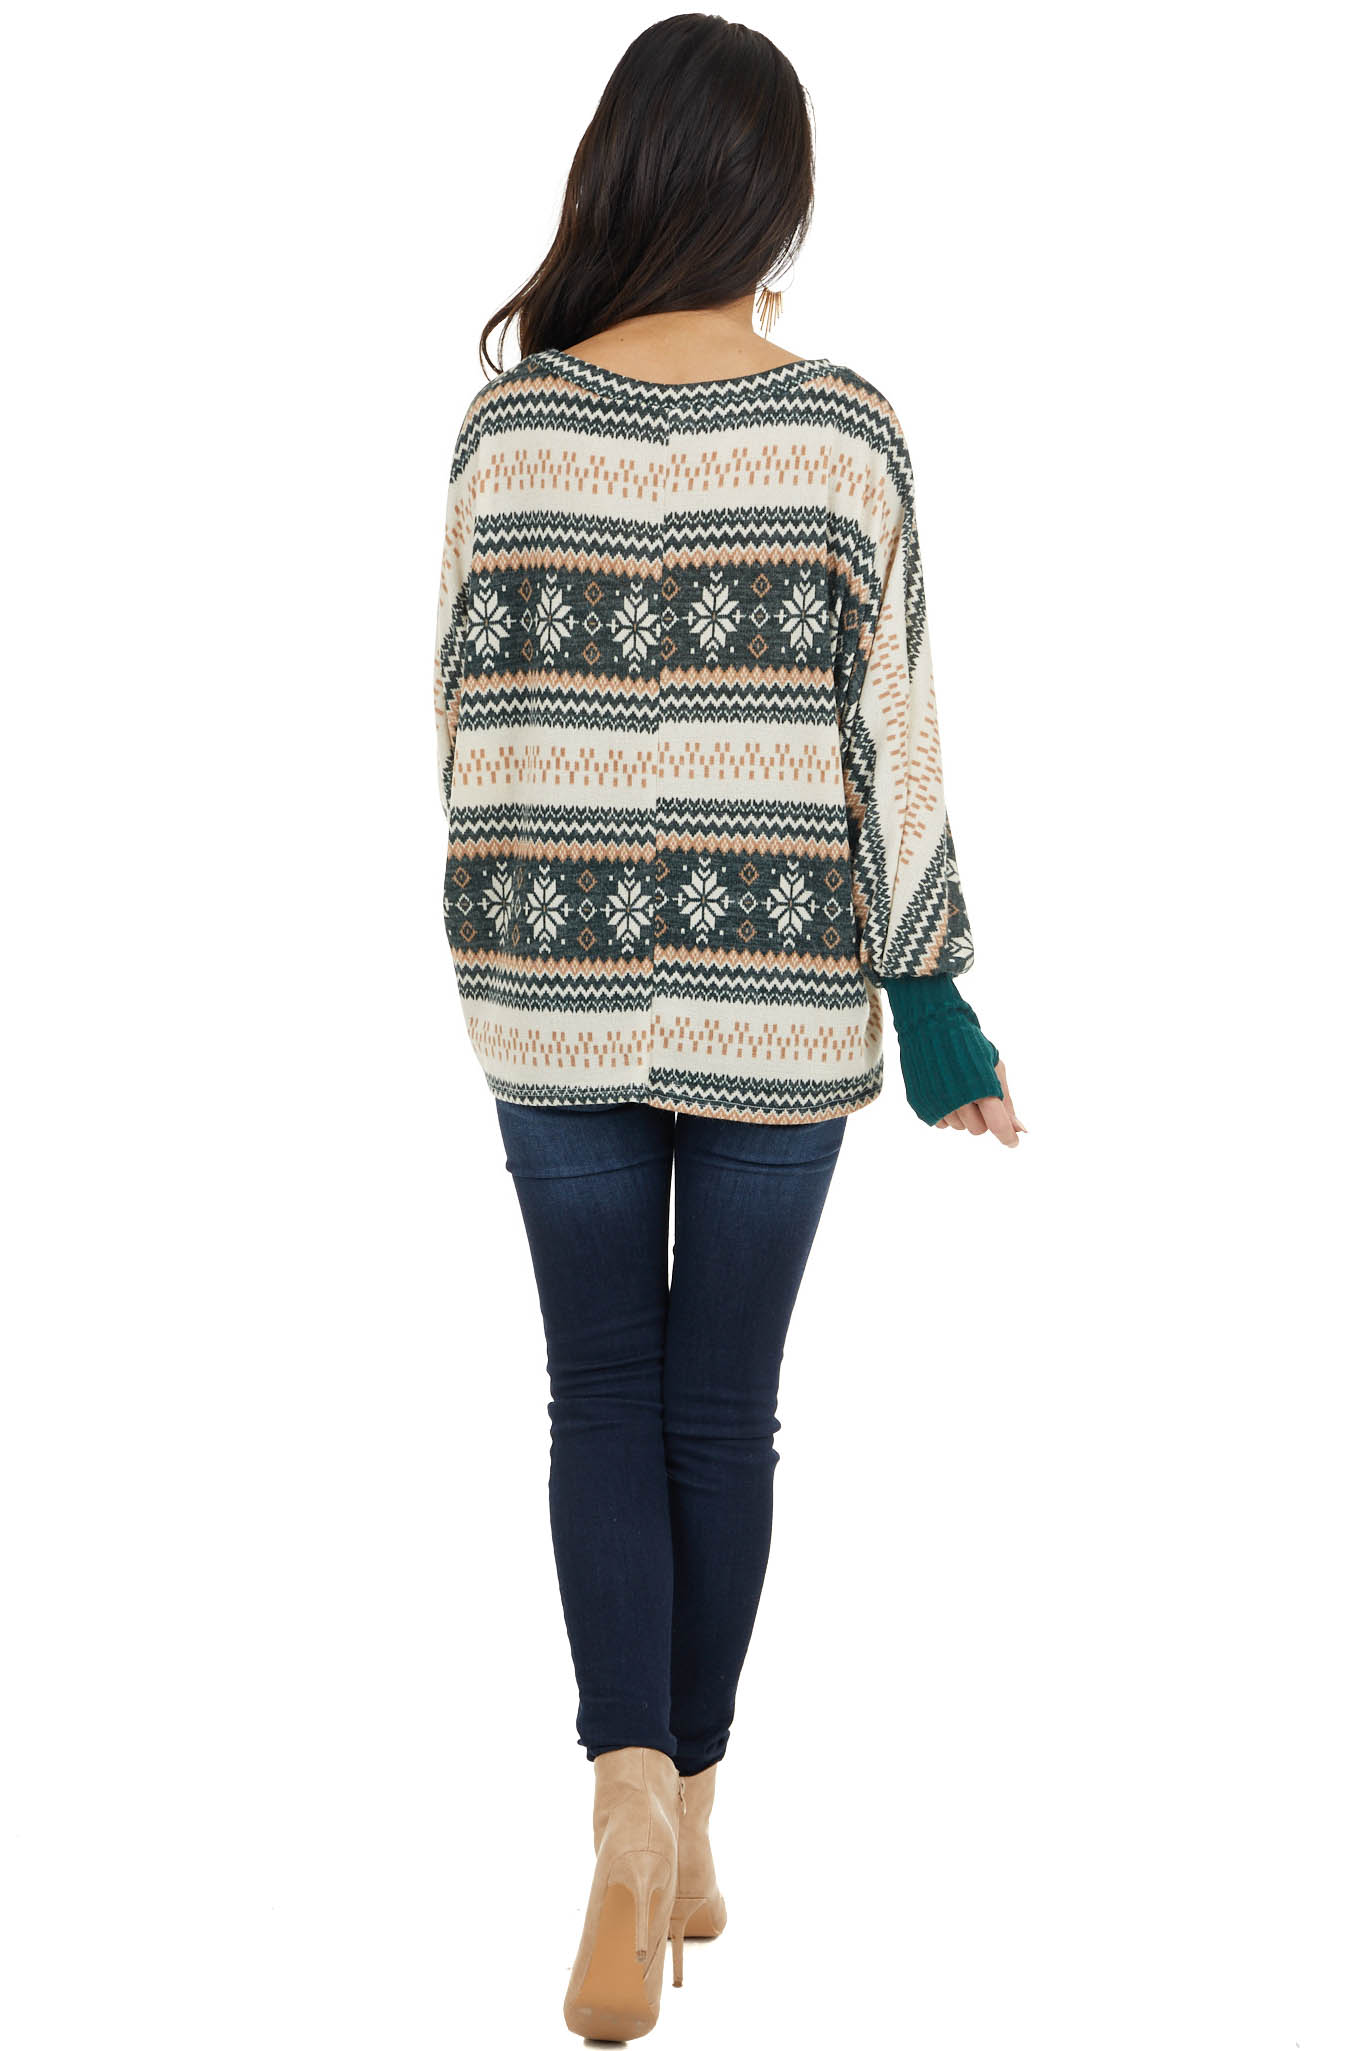 Hunter Green Holiday Print Knit Top with Long Dolman Sleeves